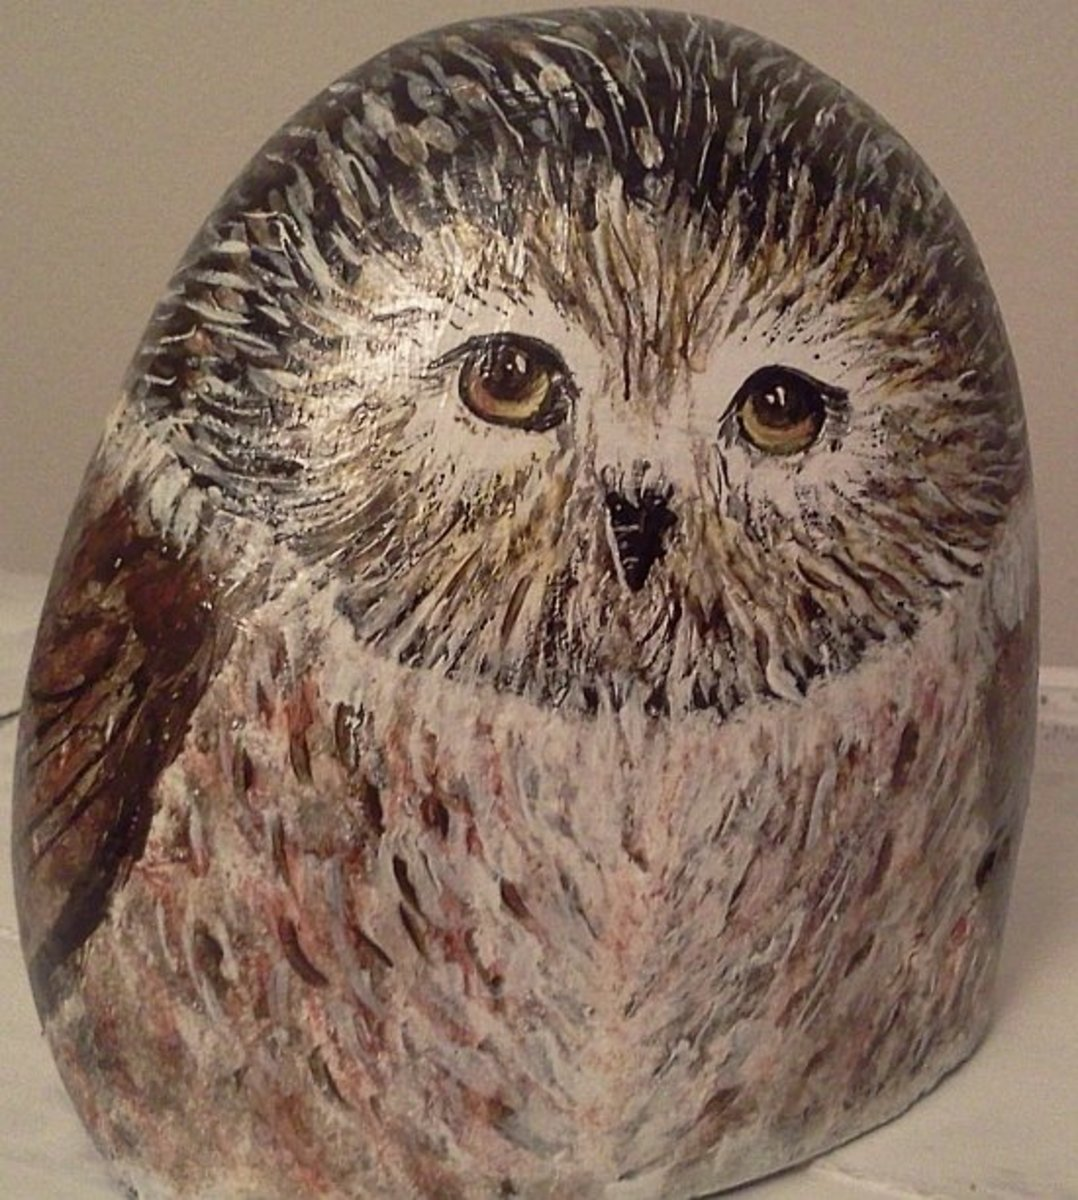 Pebbles that have broken in half are perfect for owls.